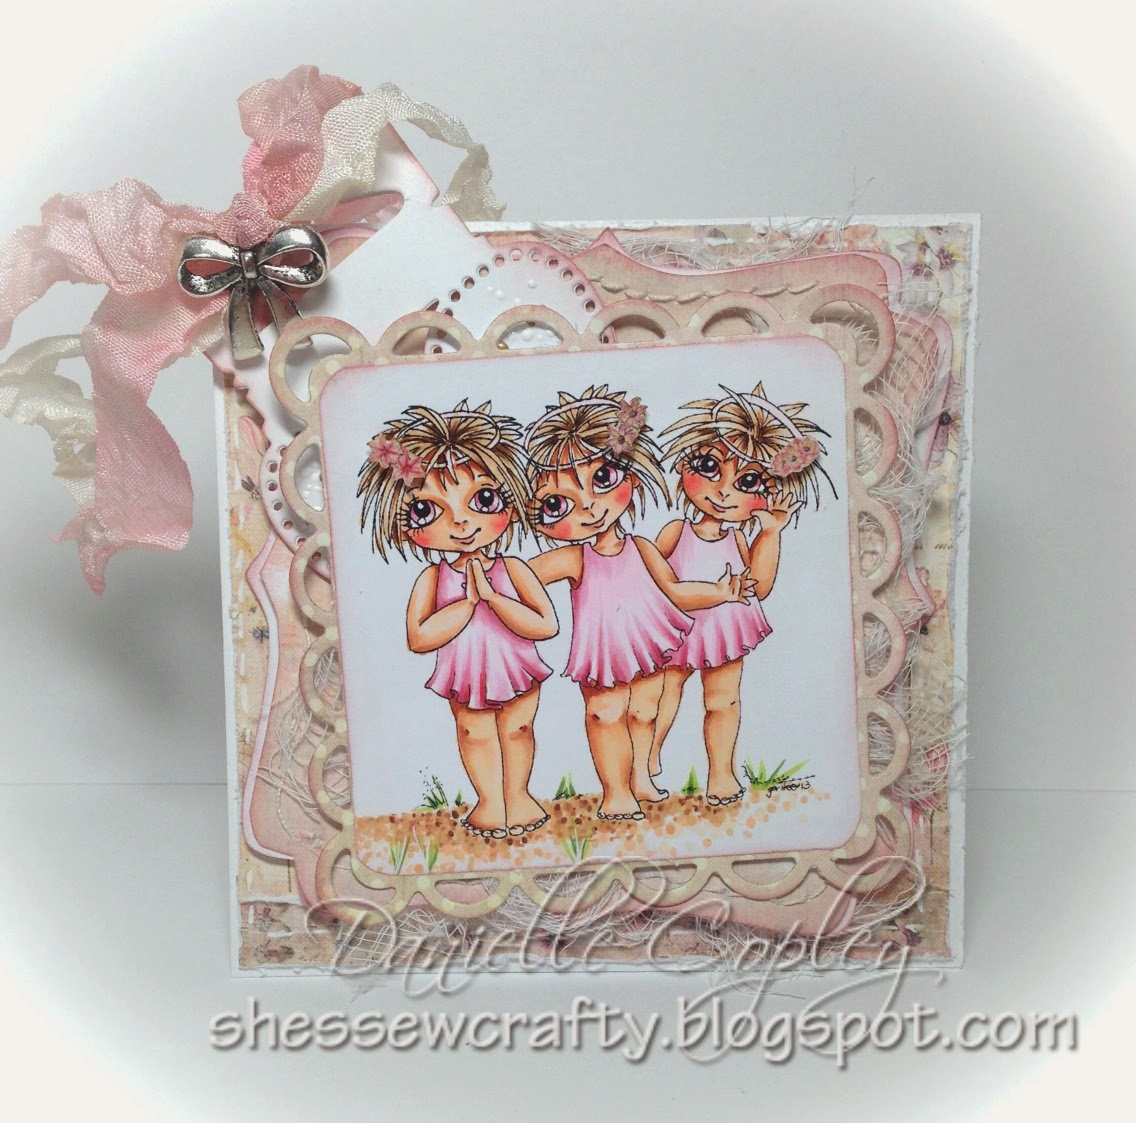 Digi Stamps 4 Joy Angels 3 R We pink card with Prima Princess paper and Magnolia Tag Die from Scrapbook Maven